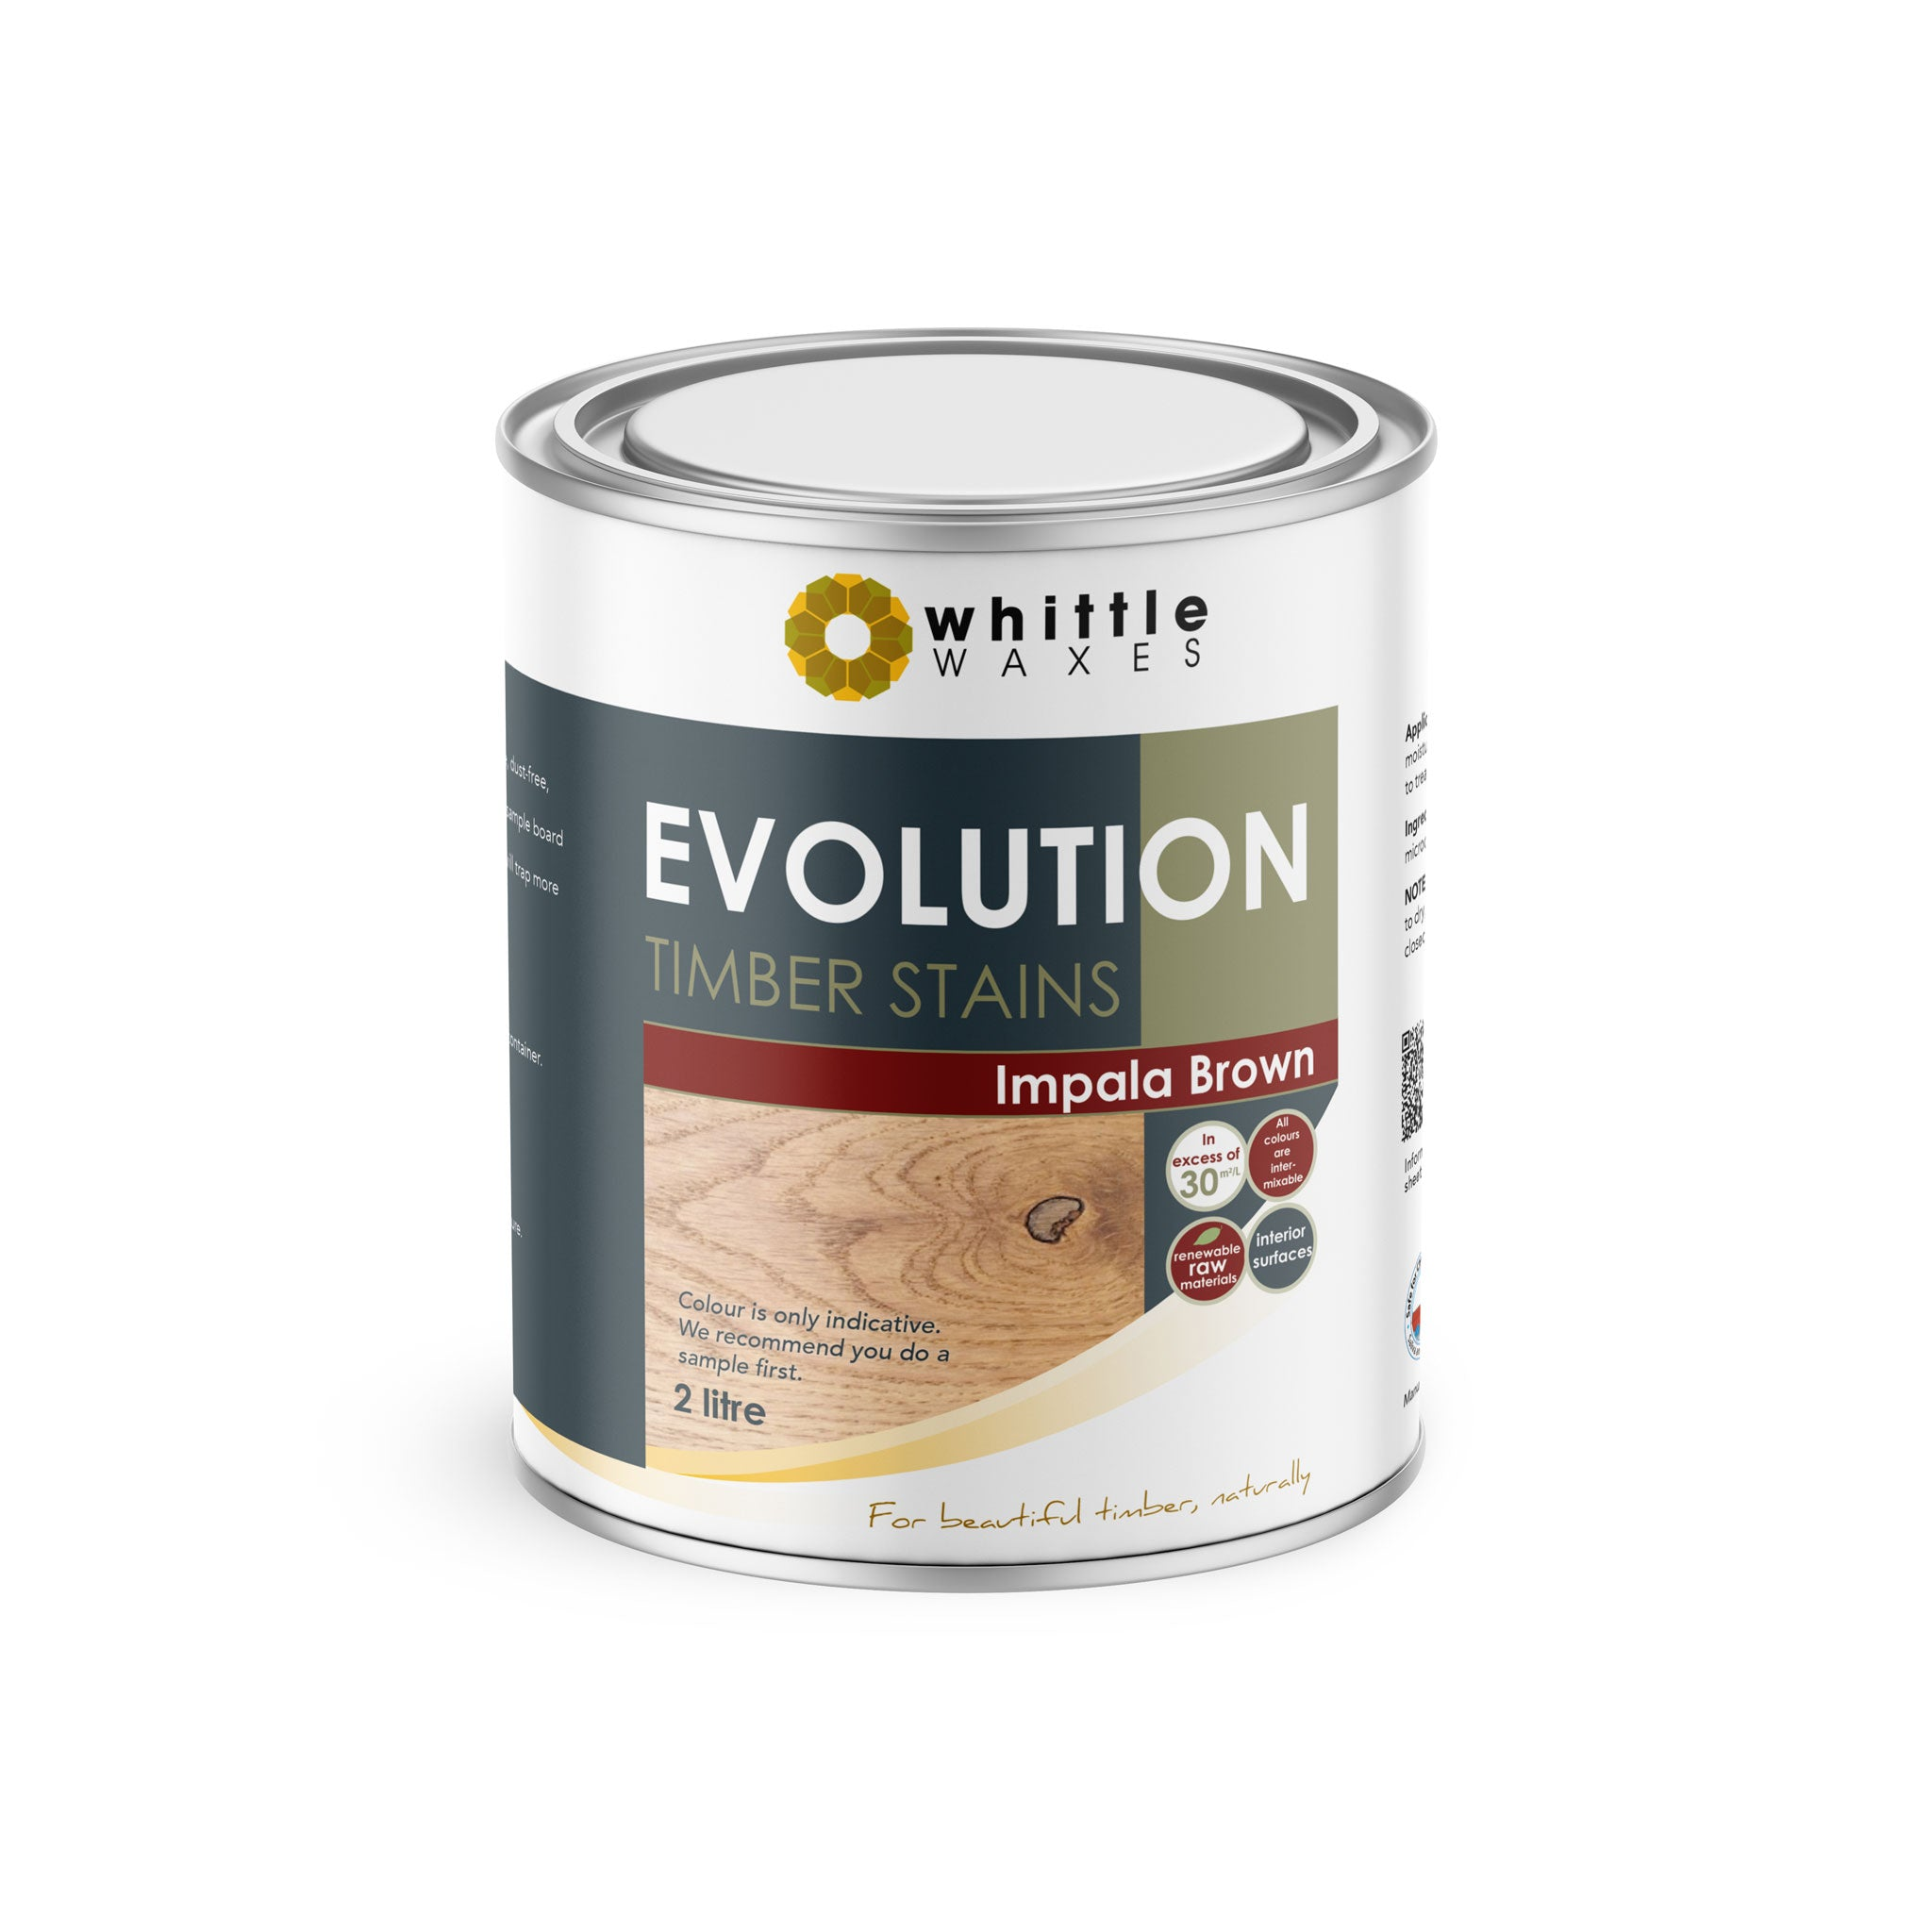 Whittle Waxes Evolution Colours (Impala Brown) - quality timber stain - 2 Litre